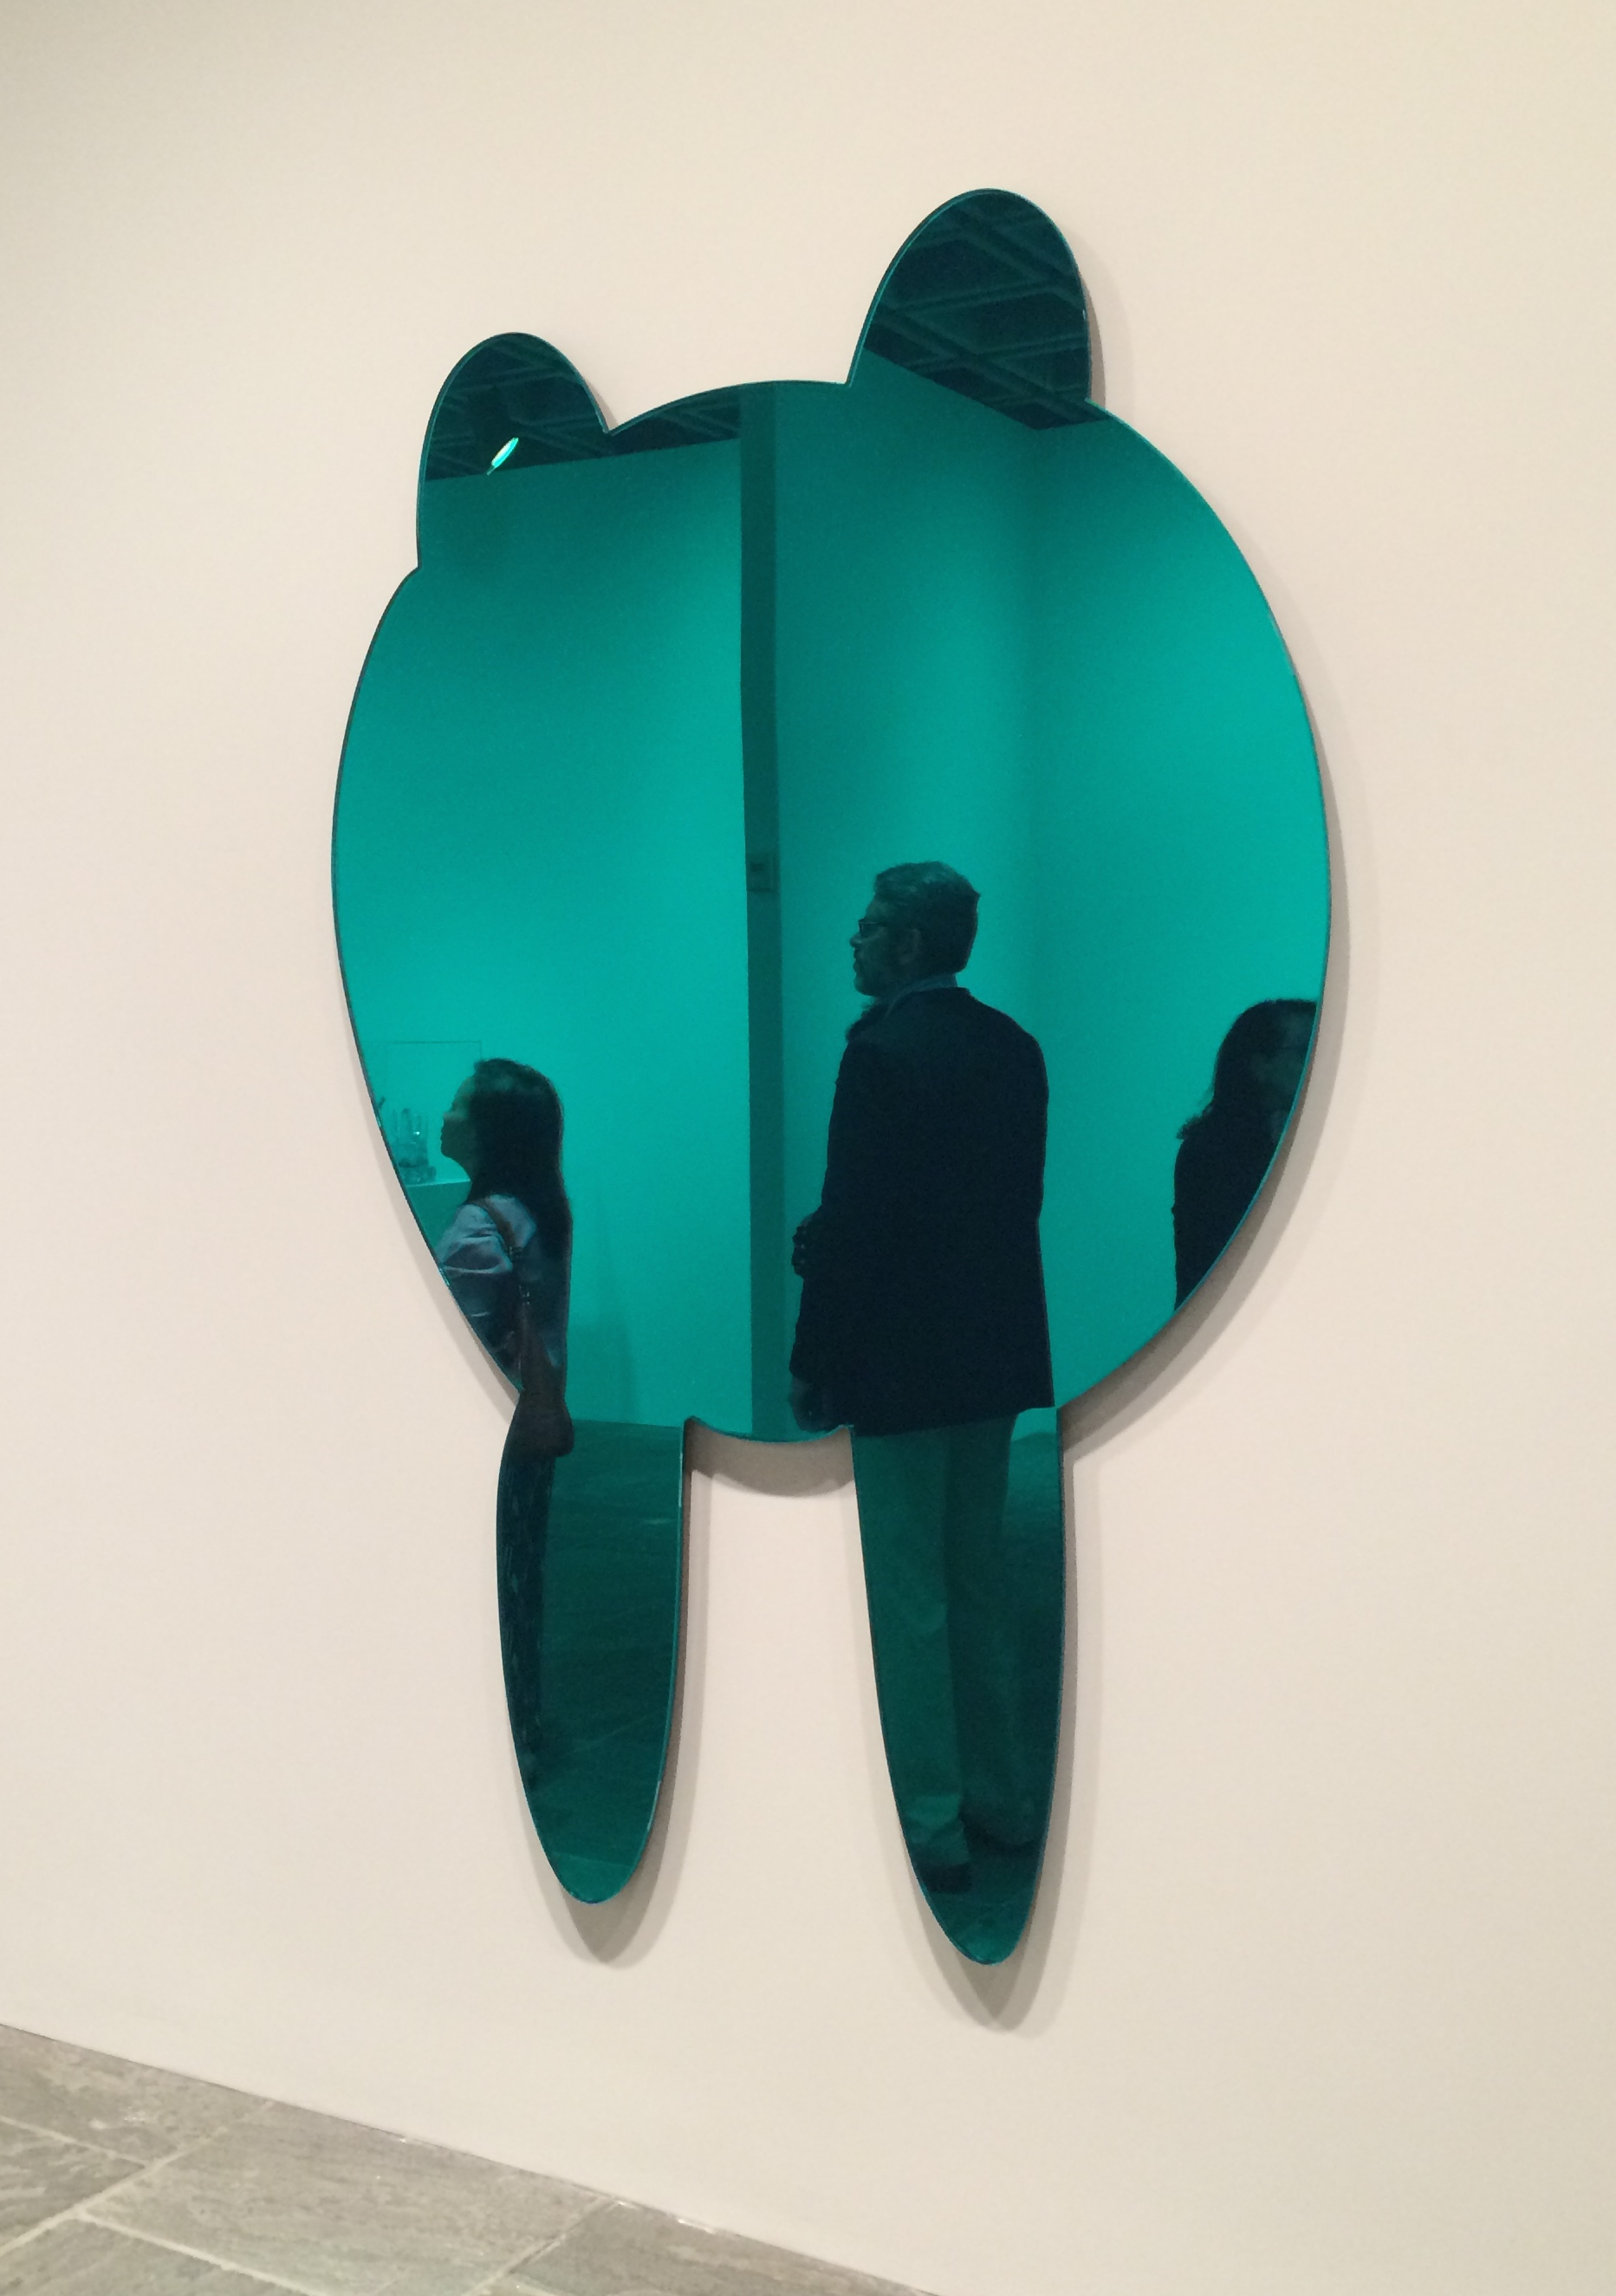 Jeff Koons Walrus (Blue Green), 1999 Chrystal glass, mirrored glass, carbon fiber, foam, colored plastic interlayer, and stainless steel